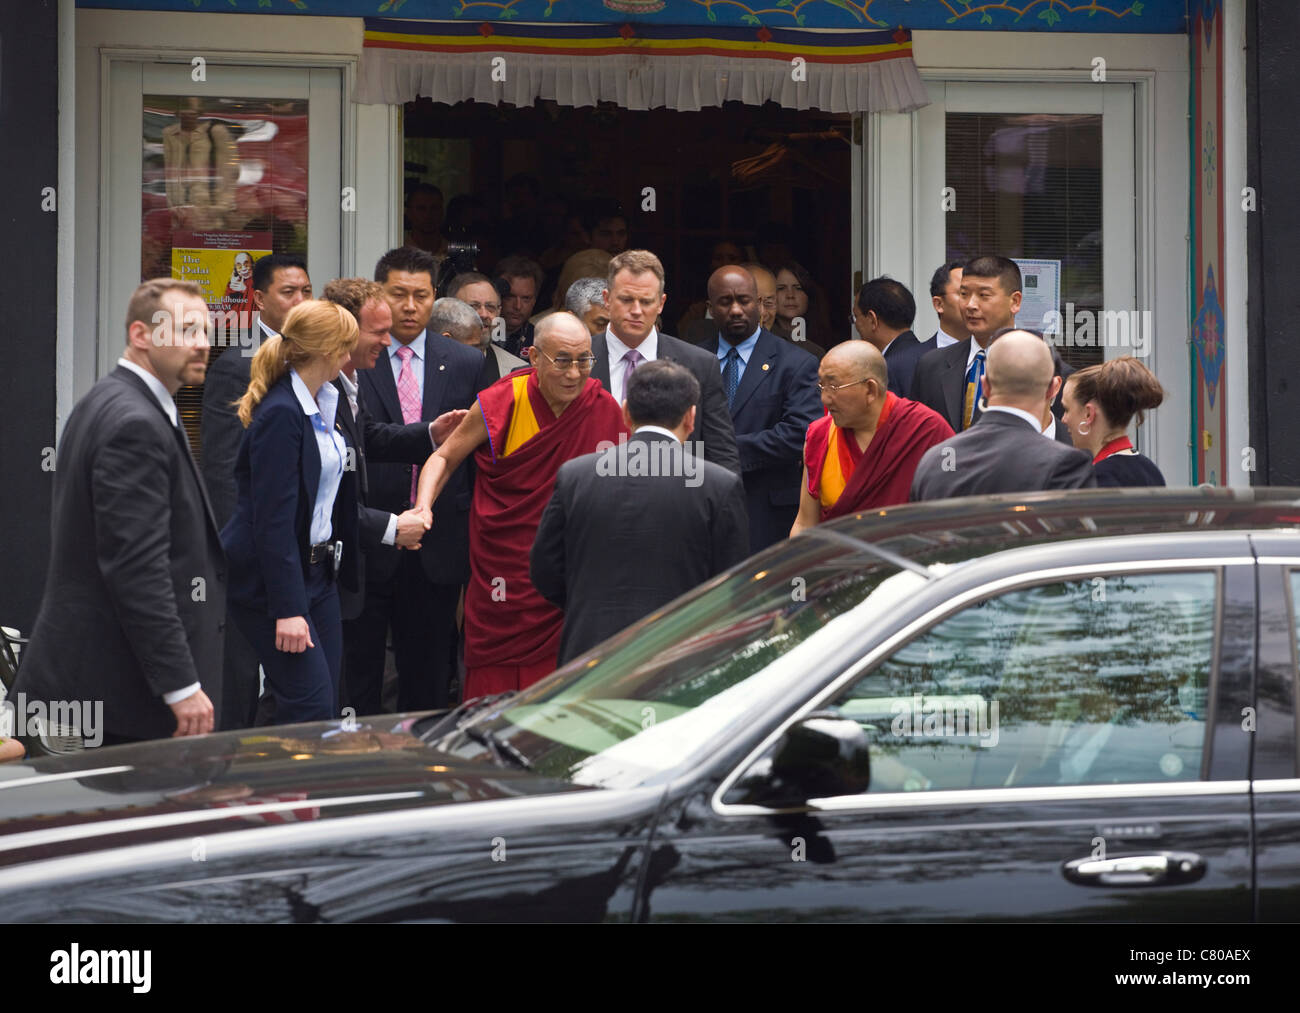 The 14th DALAI LAMA of Tibet and the secret service - BLOOMINGTON, INDIANA Stock Photo